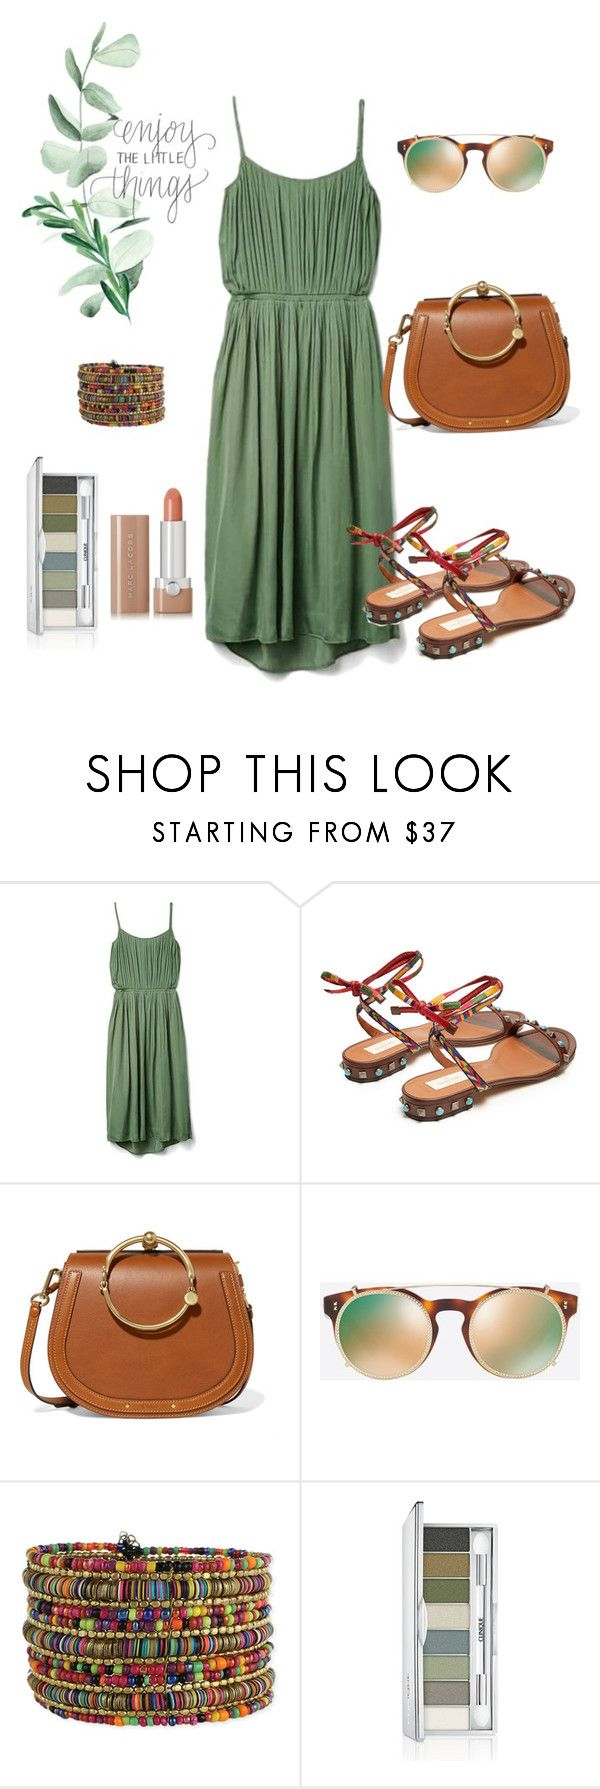 """Untitled #7"" by alya-volov on Polyvore featuring Gap, Valentino, Chloé, Clinique and Marc Jacobs"